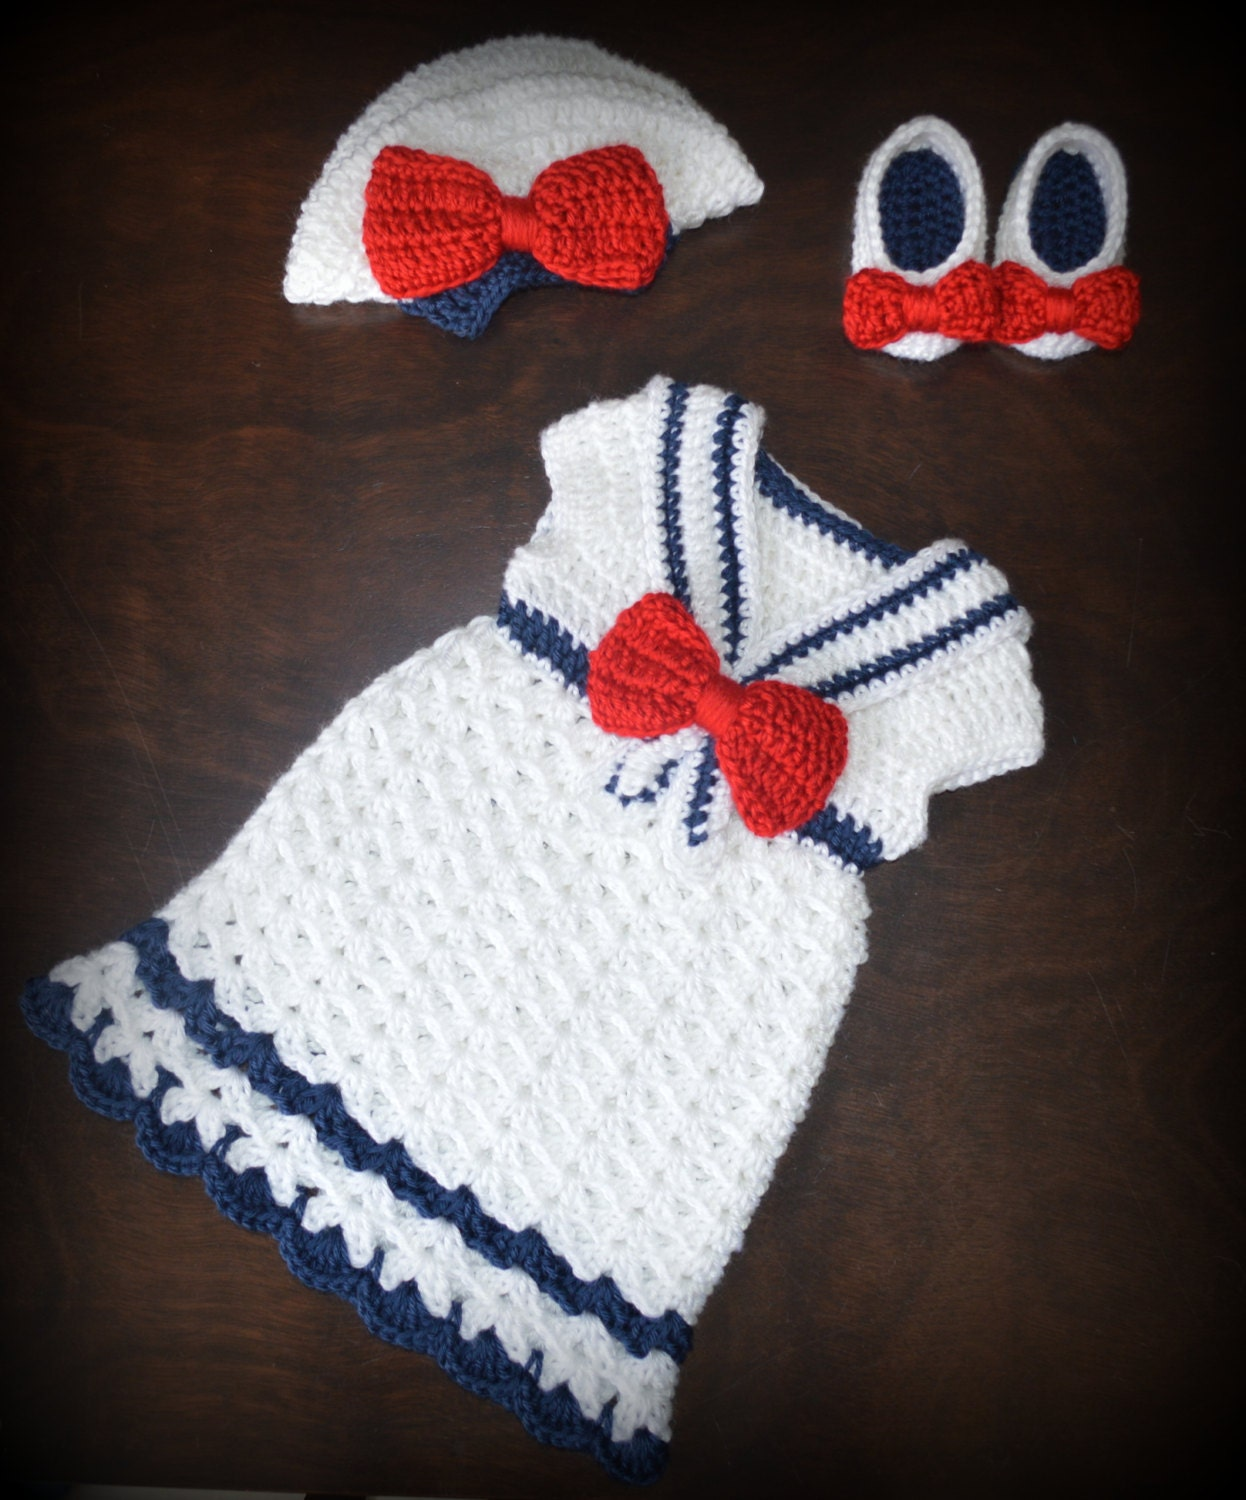 Free Crochet Pattern For Sailor Hat : Crochet Sailor Hat & Matching Dress with Shoes Nautical Photo